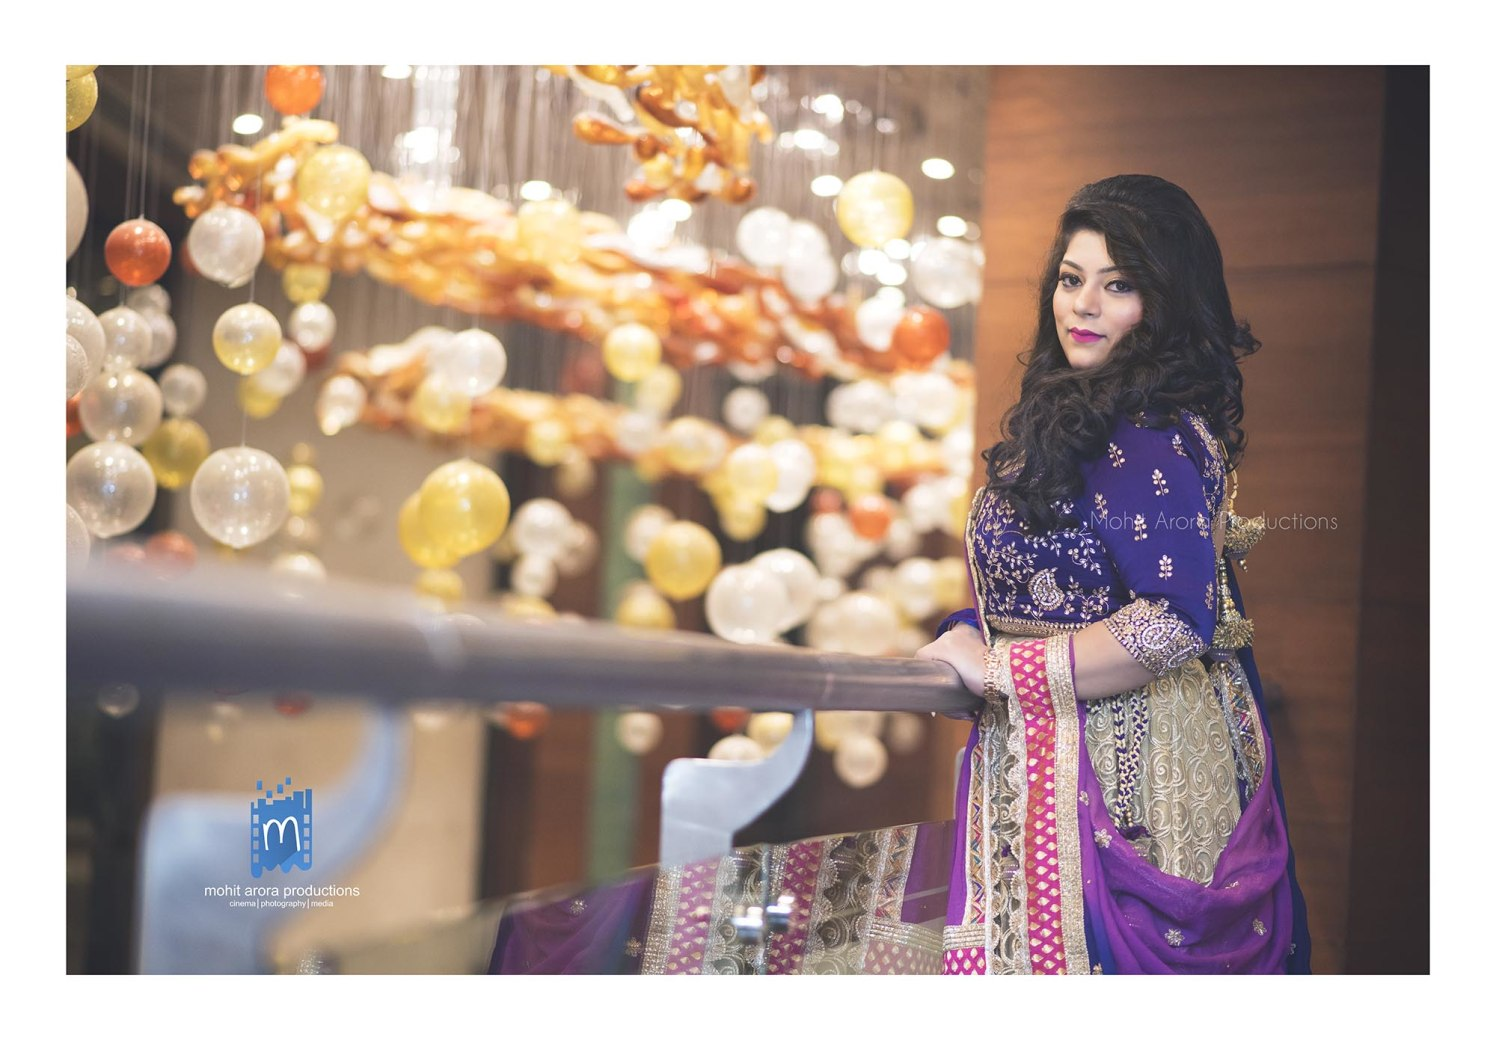 Cheerup buttercup by Mohit Arora Productions Wedding-photography | Weddings Photos & Ideas